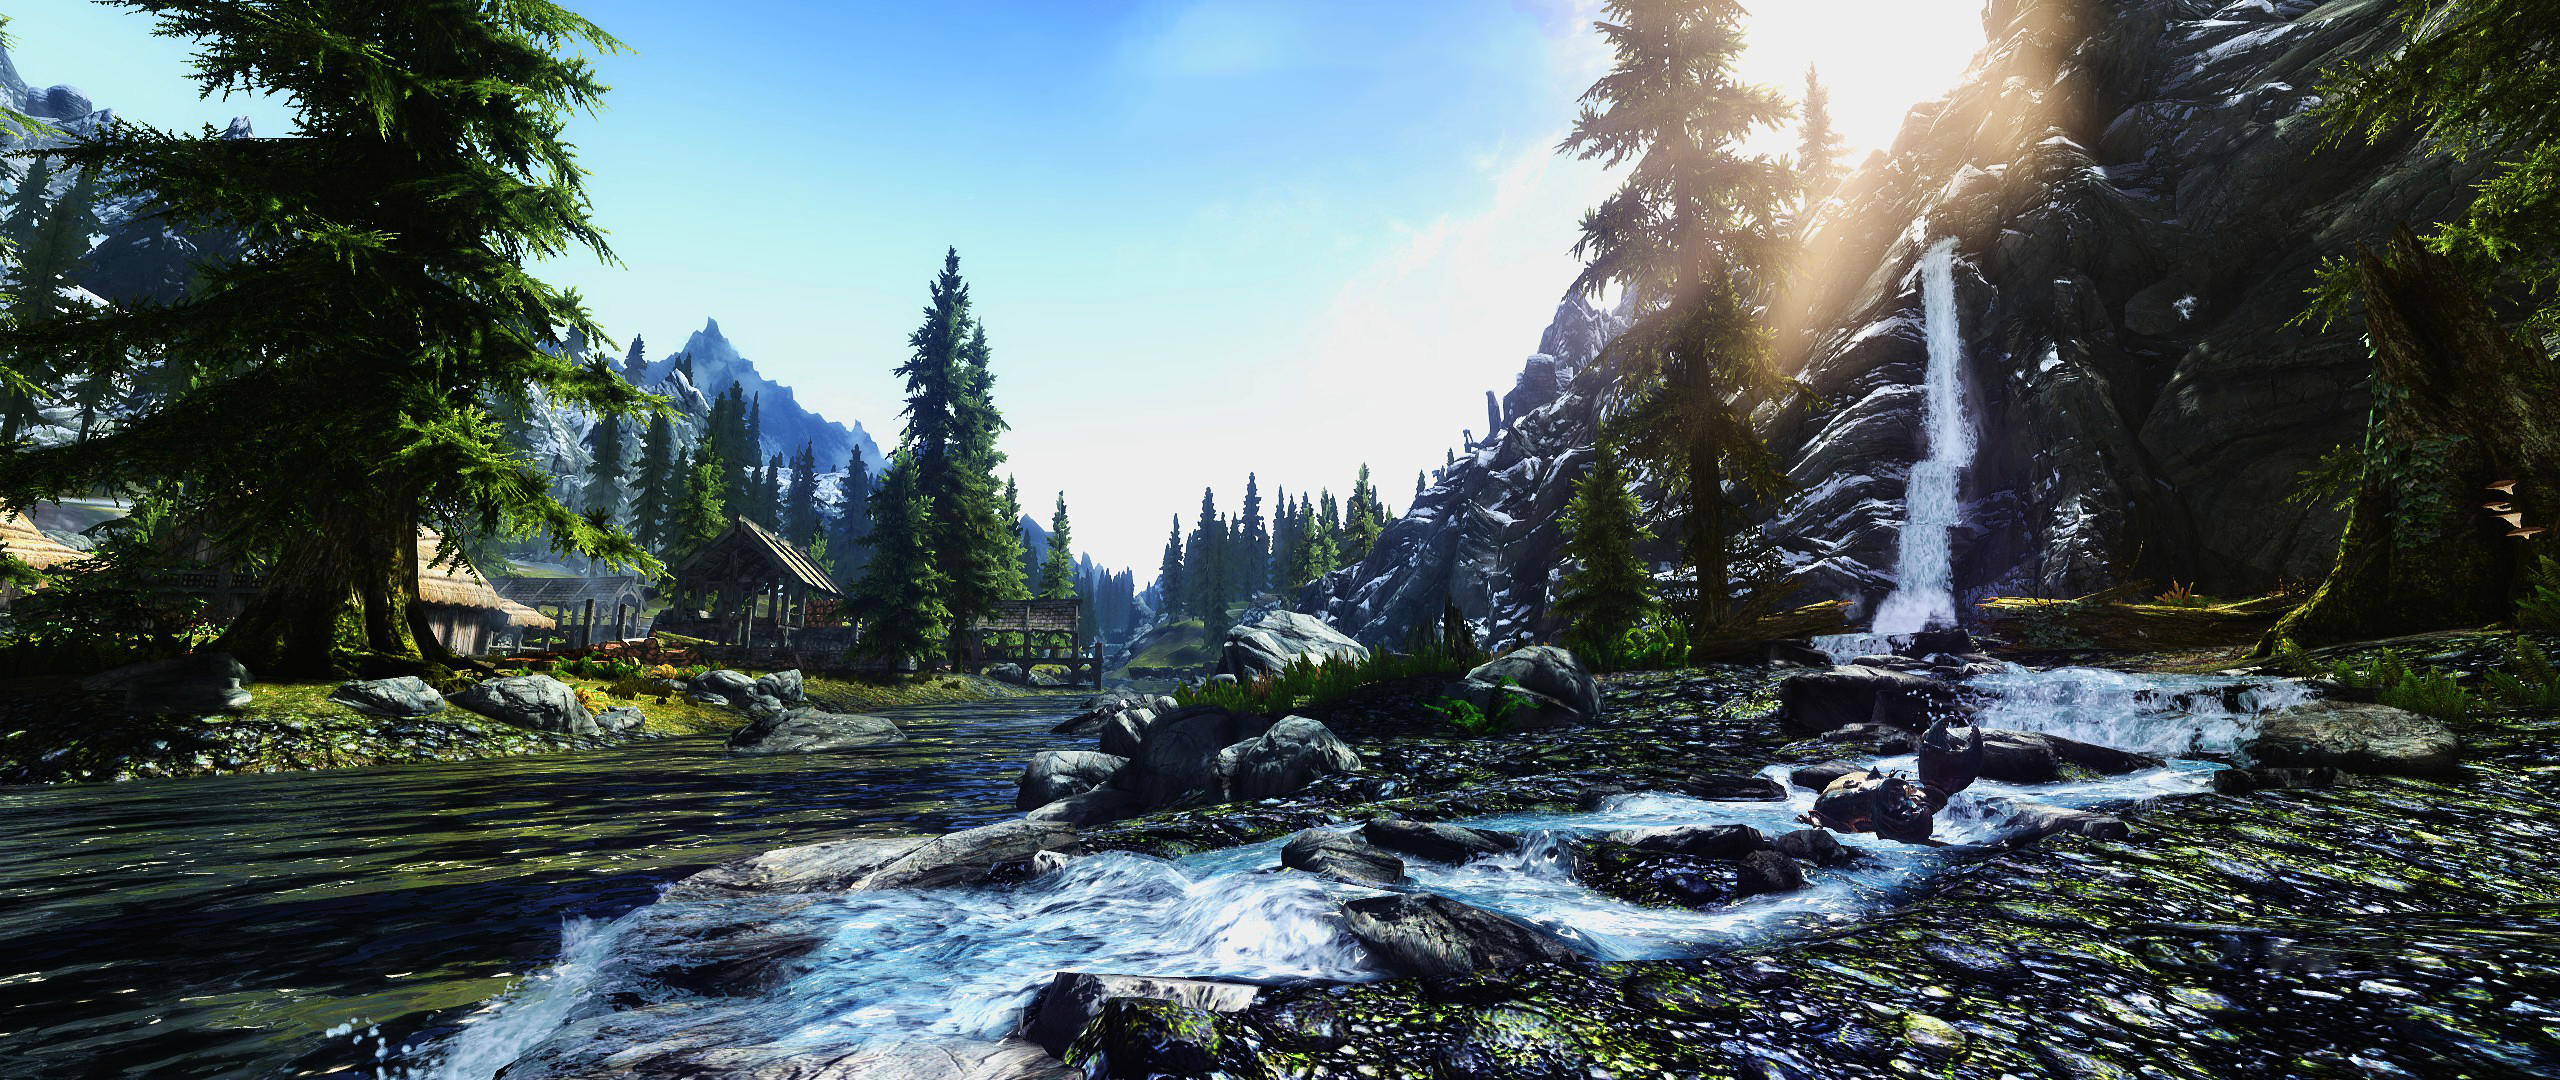 1235 The Elder Scrolls V Skyrim HD Wallpapers Backgrounds